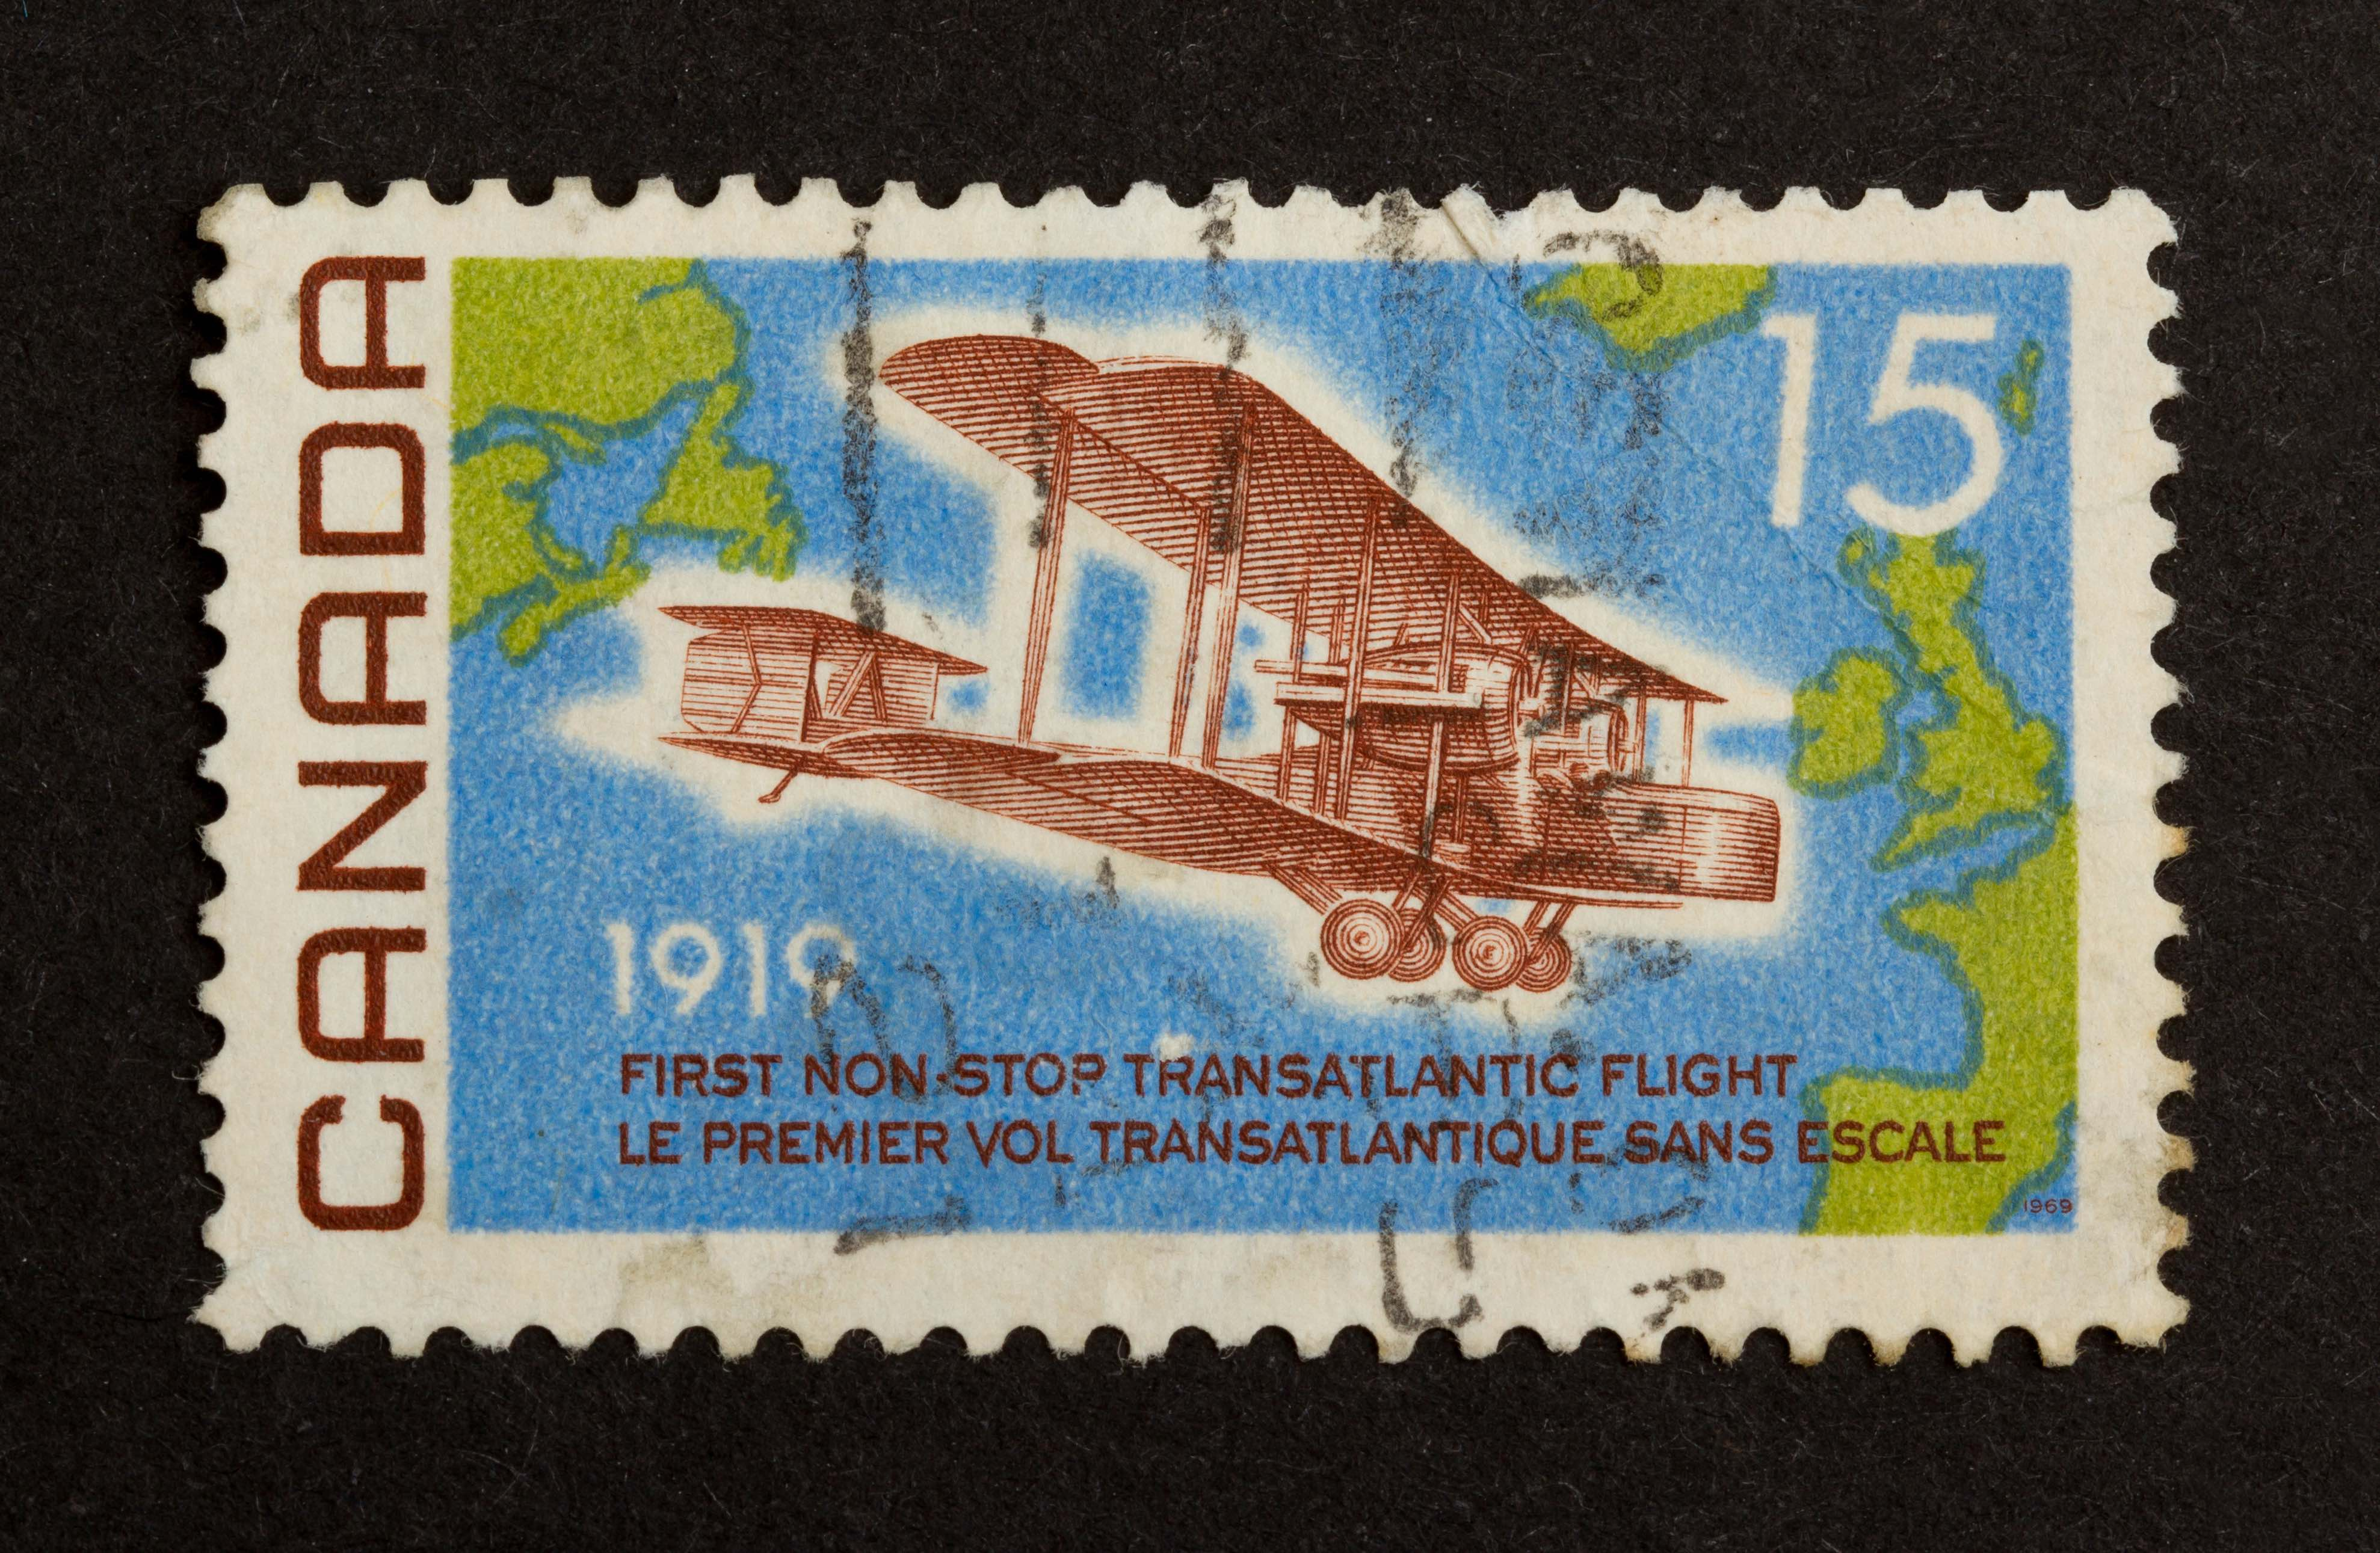 CANADA - CIRCA 1980: Stamp printed in Canada shows a world map and a airplane (1919), circa 1980